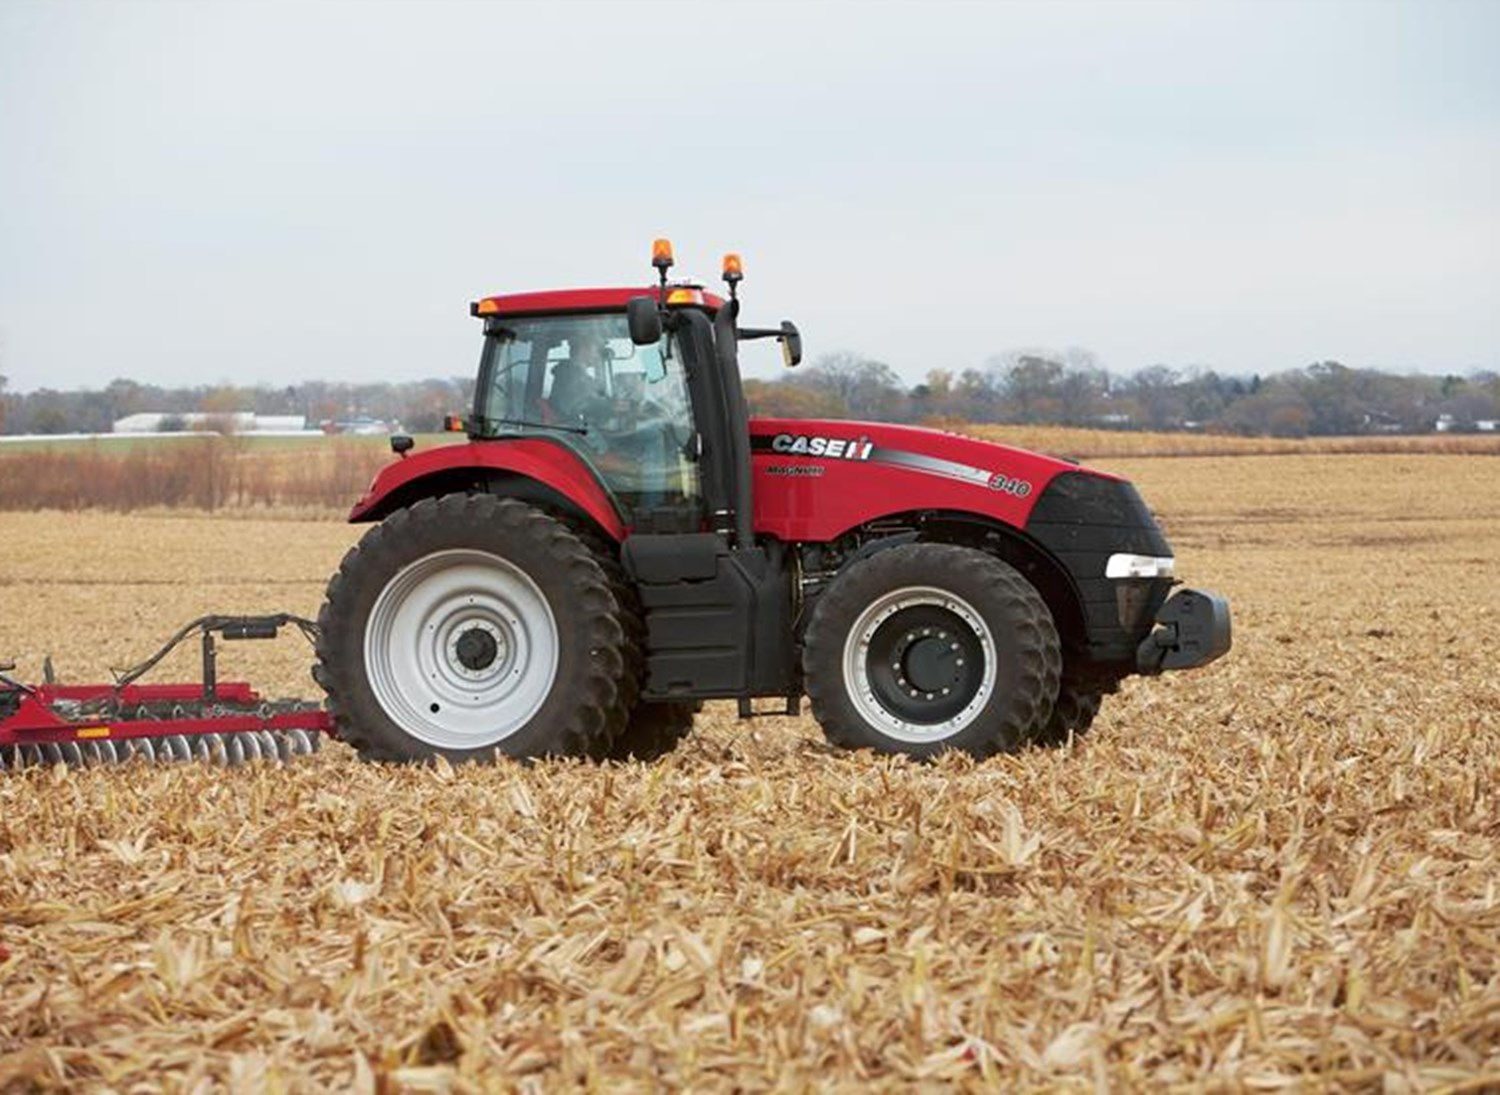 CASE IH MAGNUM 250-380 8.7L ENGINE TRACTOR SERIES